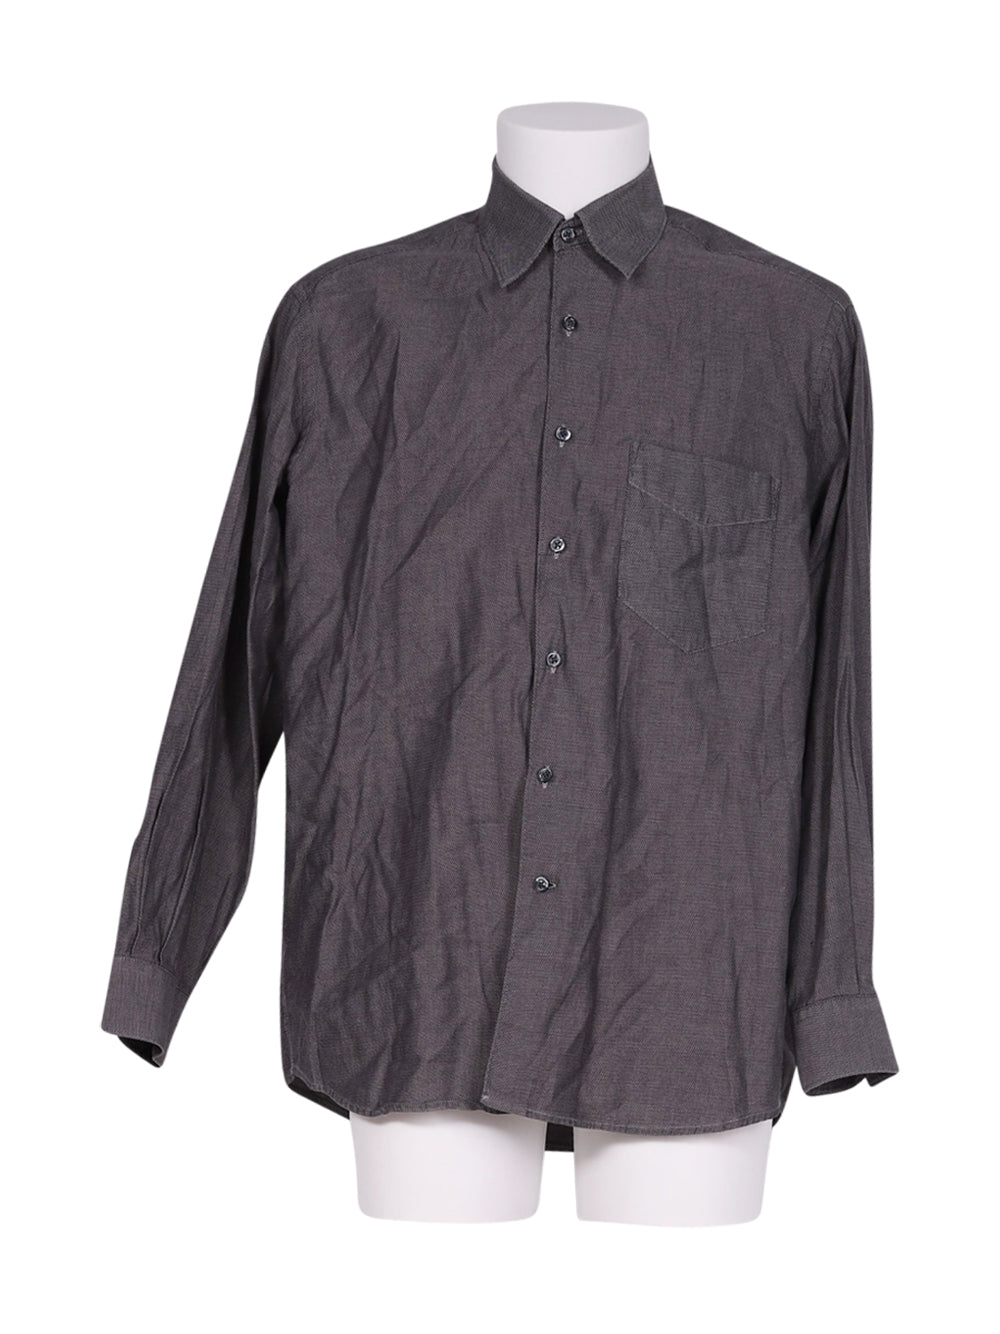 Front photo of Preloved ipuri Grey Man's shirt - size 40/L